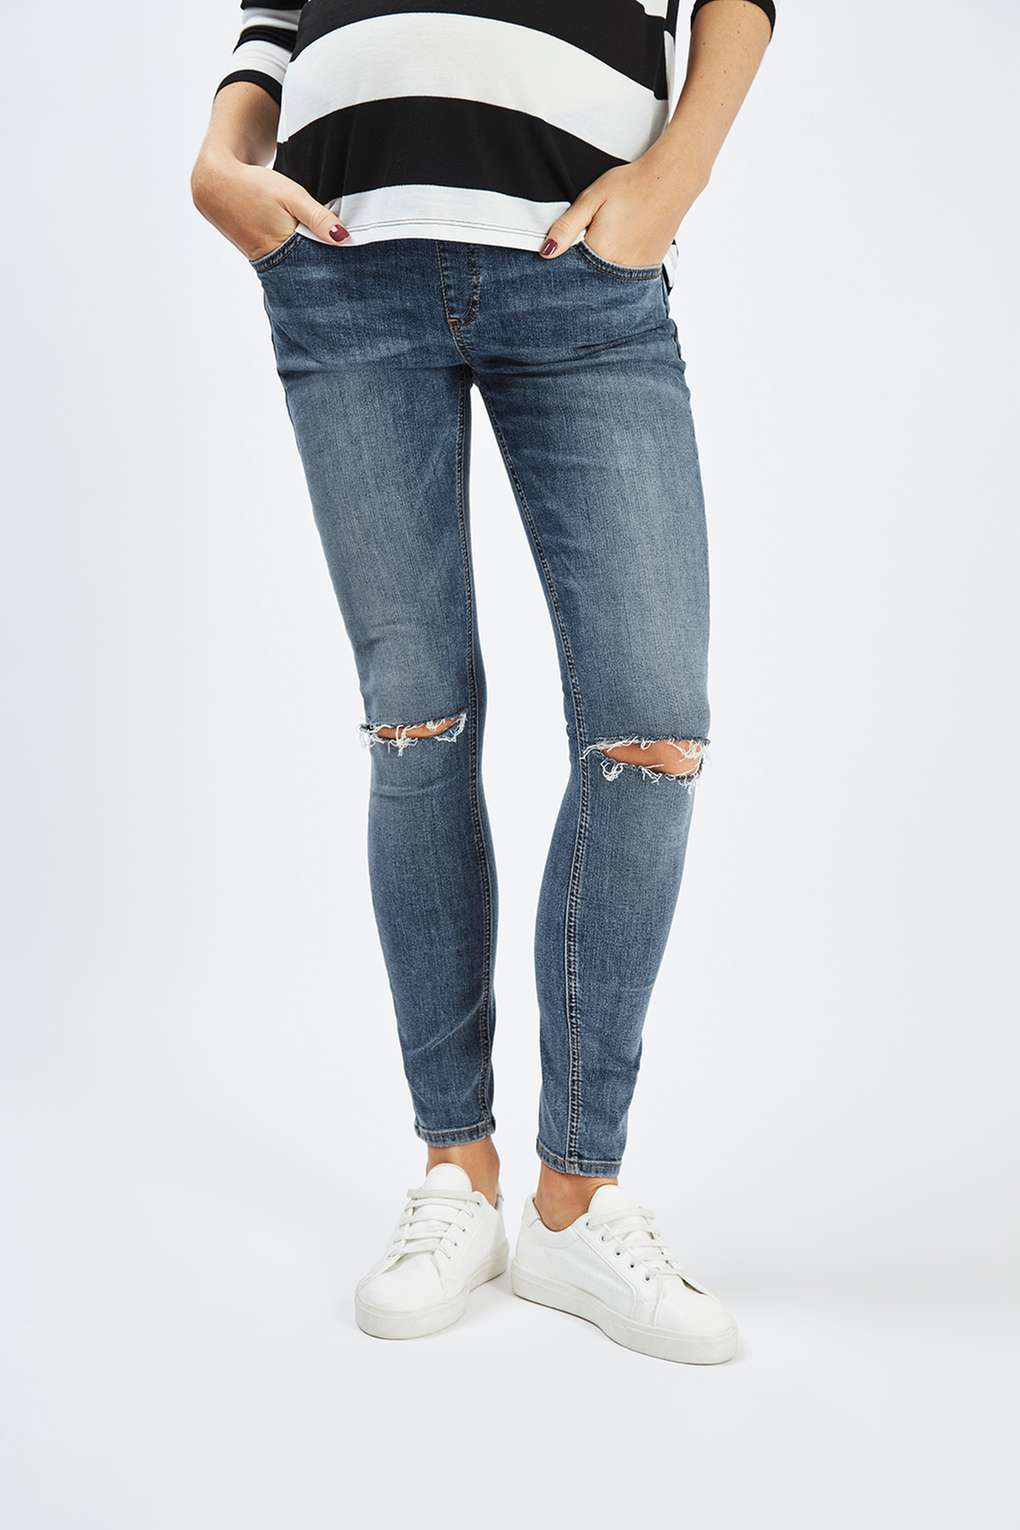 maternity jeans topshop